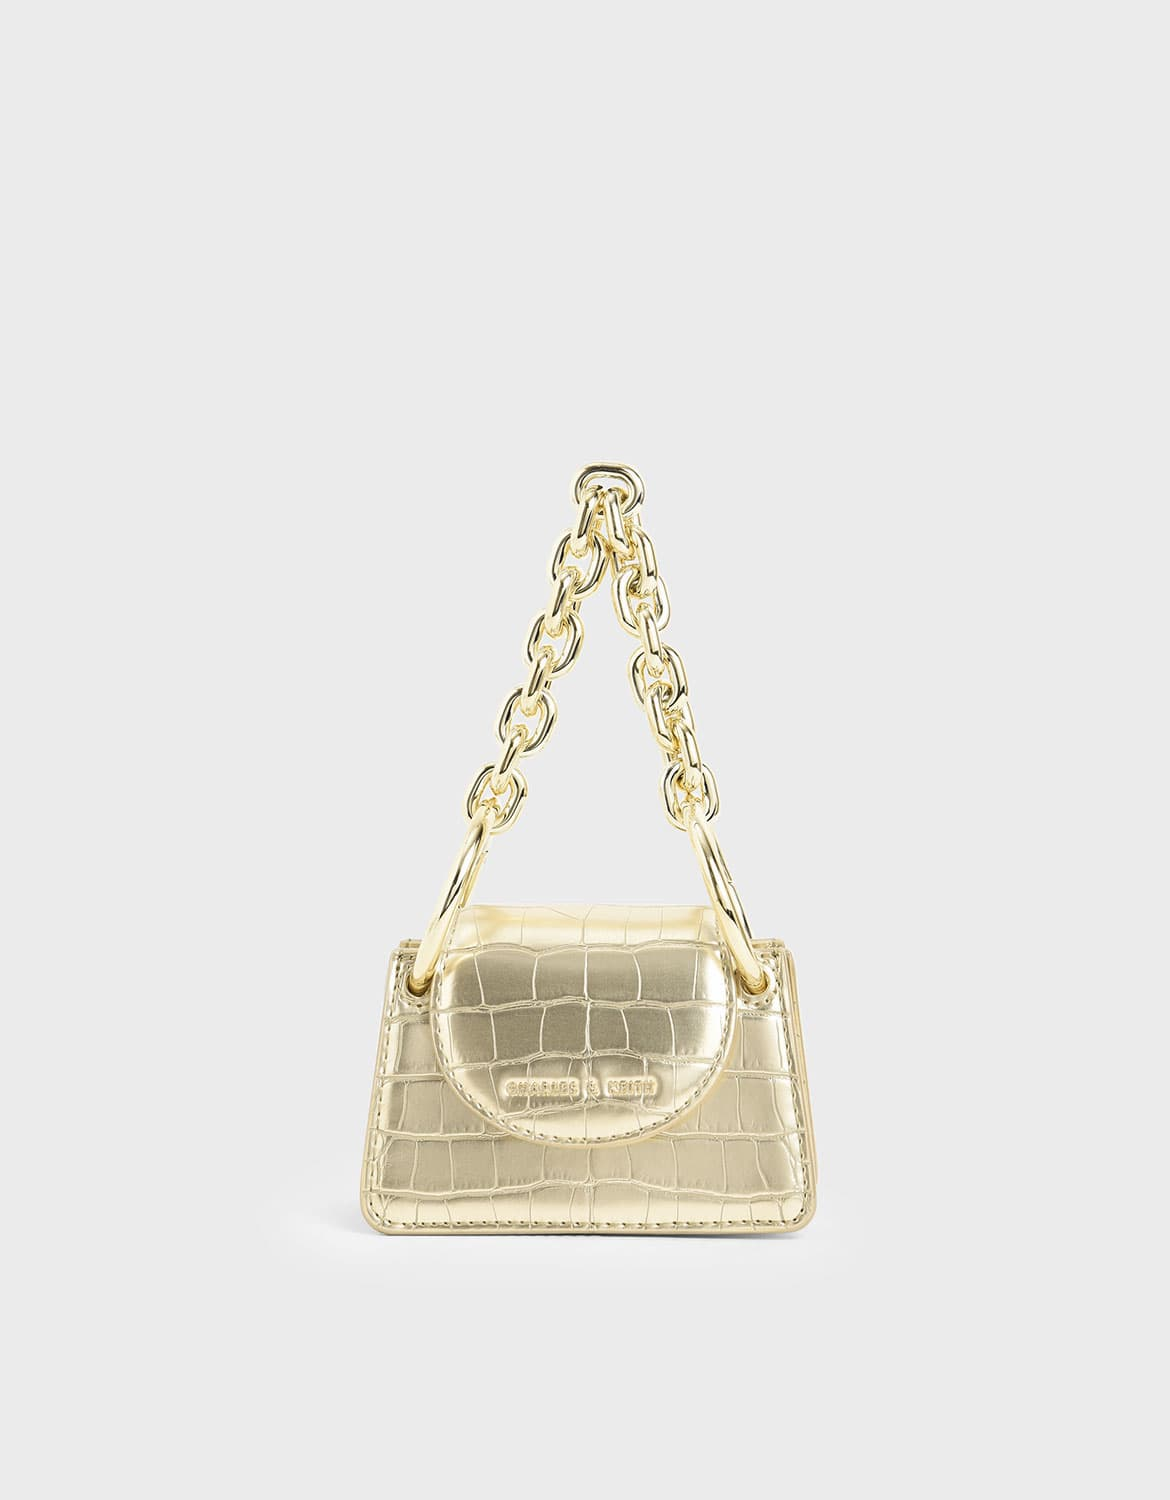 croc-effect chunky chain handle mini bag in gold – CHARLES & KEITH